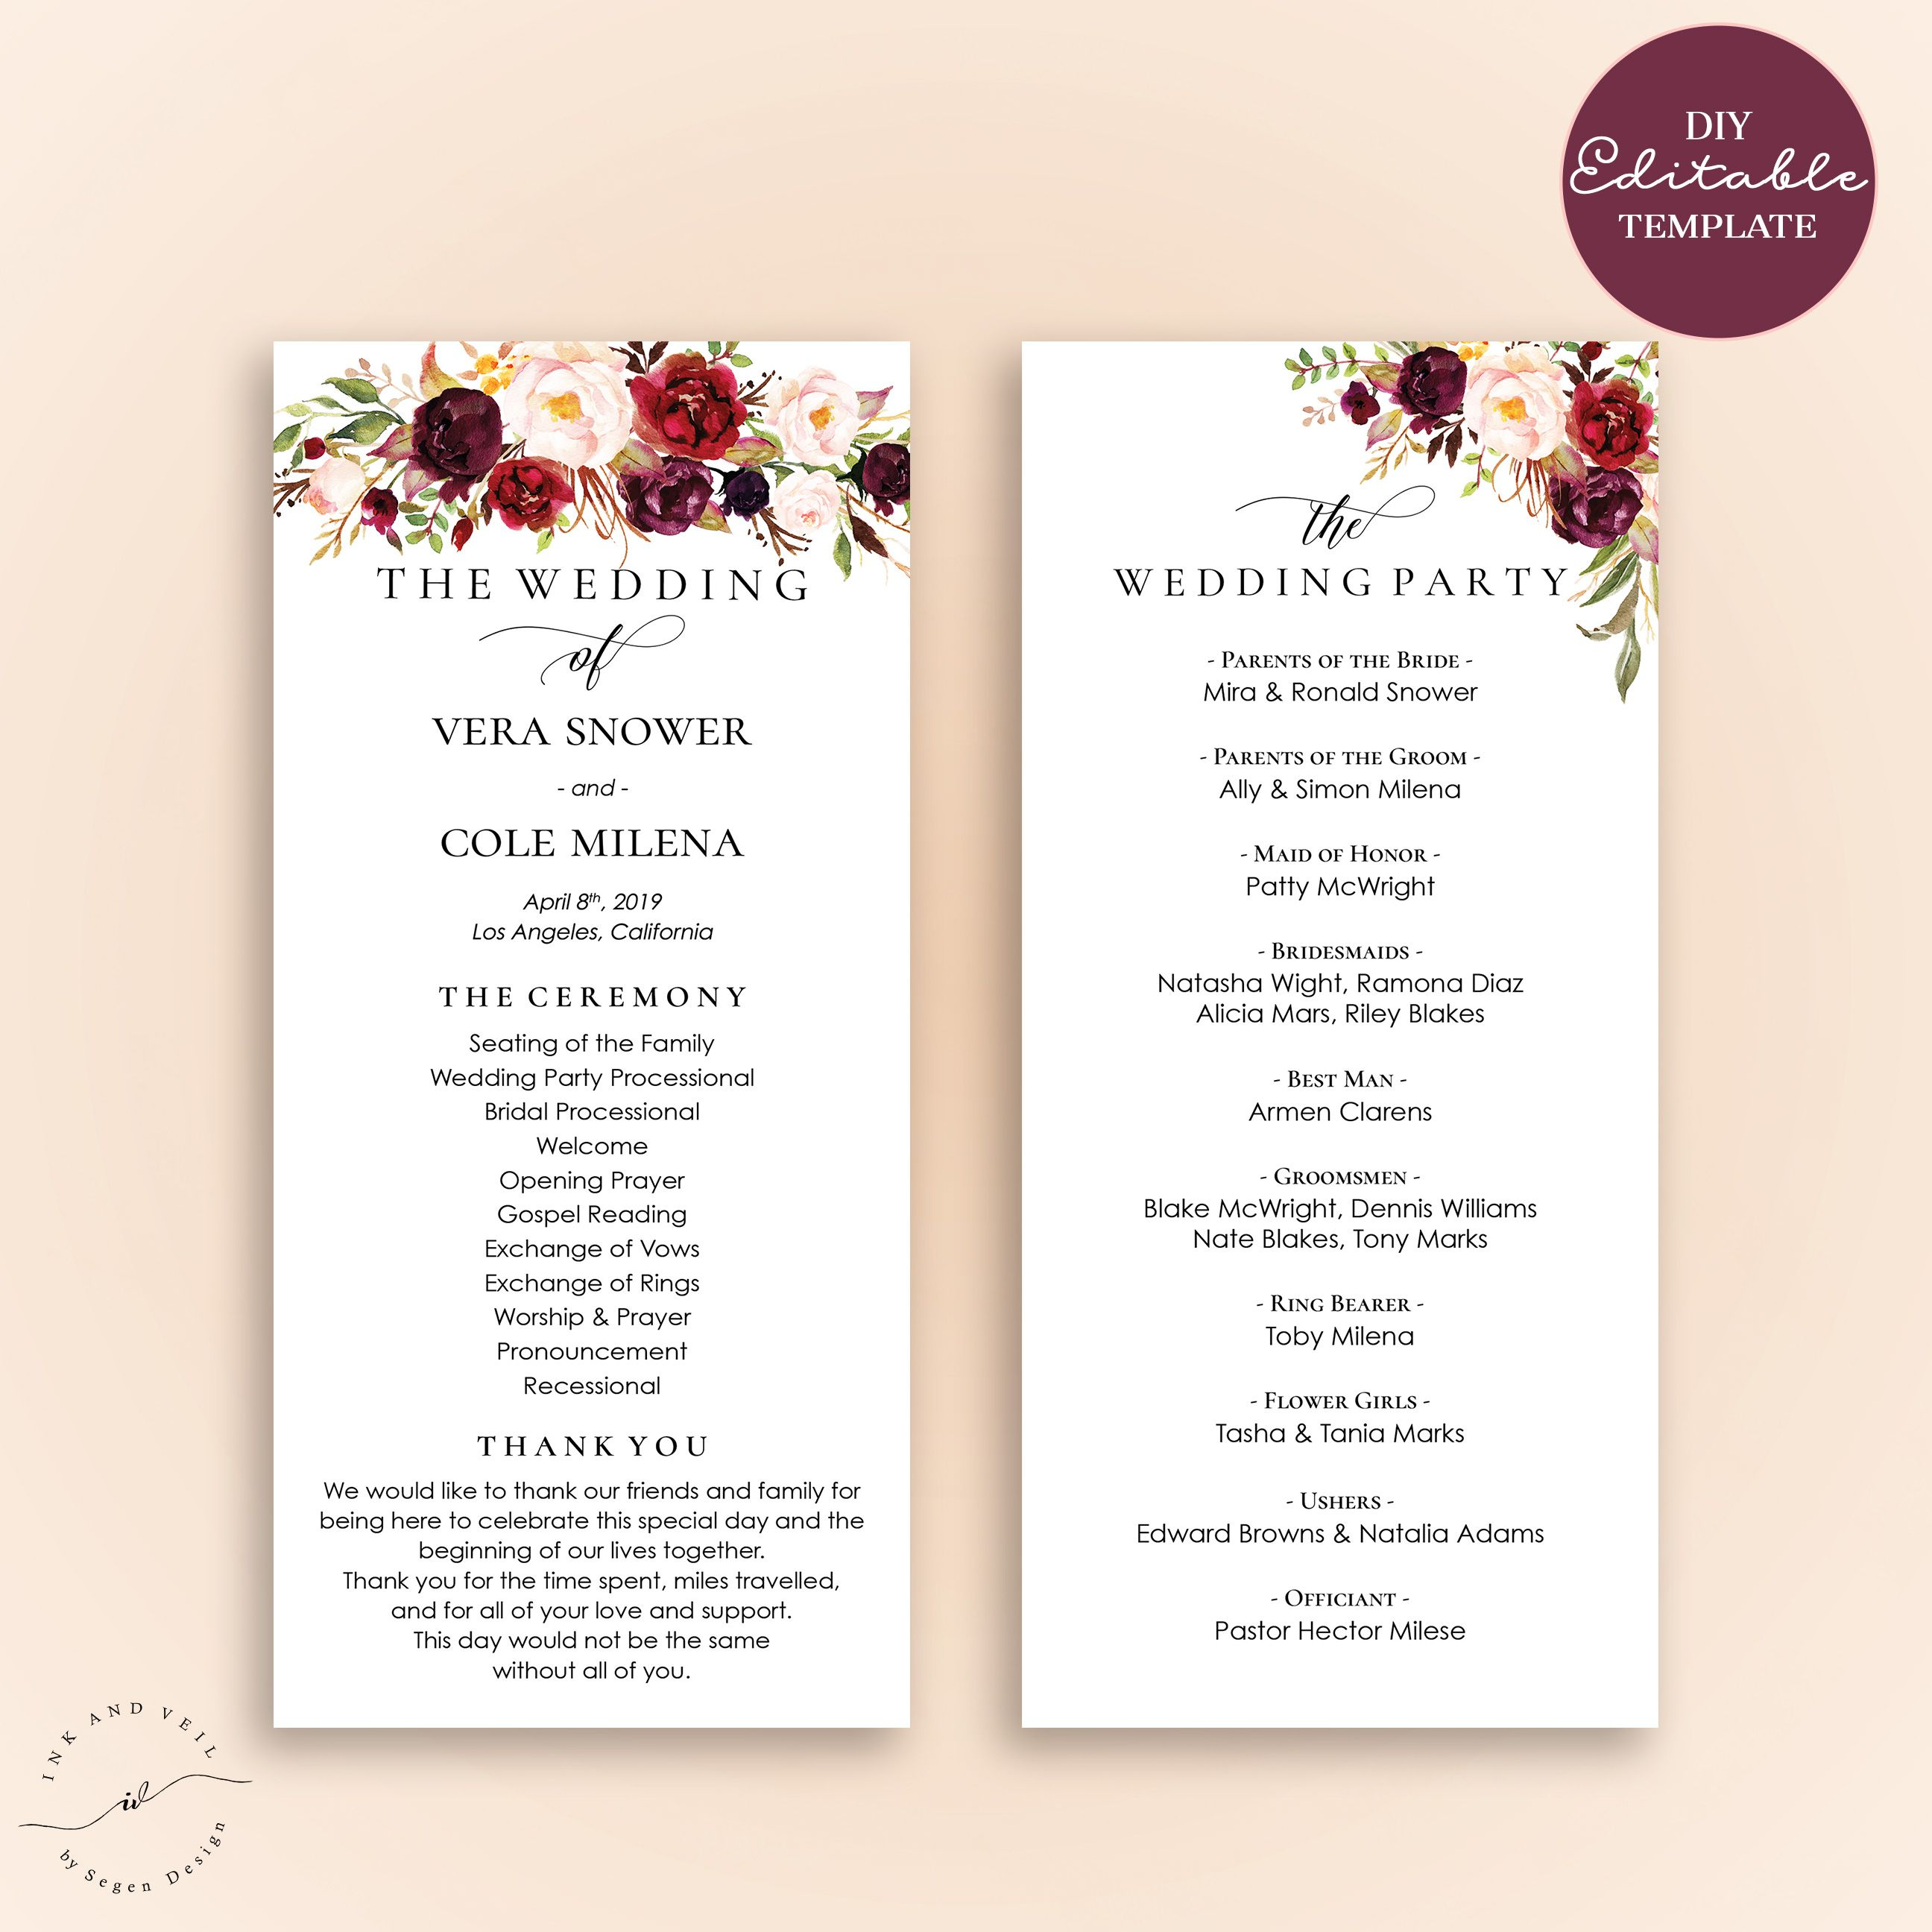 Editable Wedding Program Template Order Of Ceremony Template Etsy In 2020 Printable Wedding Programs Wedding Programs Template Ceremony Program Template